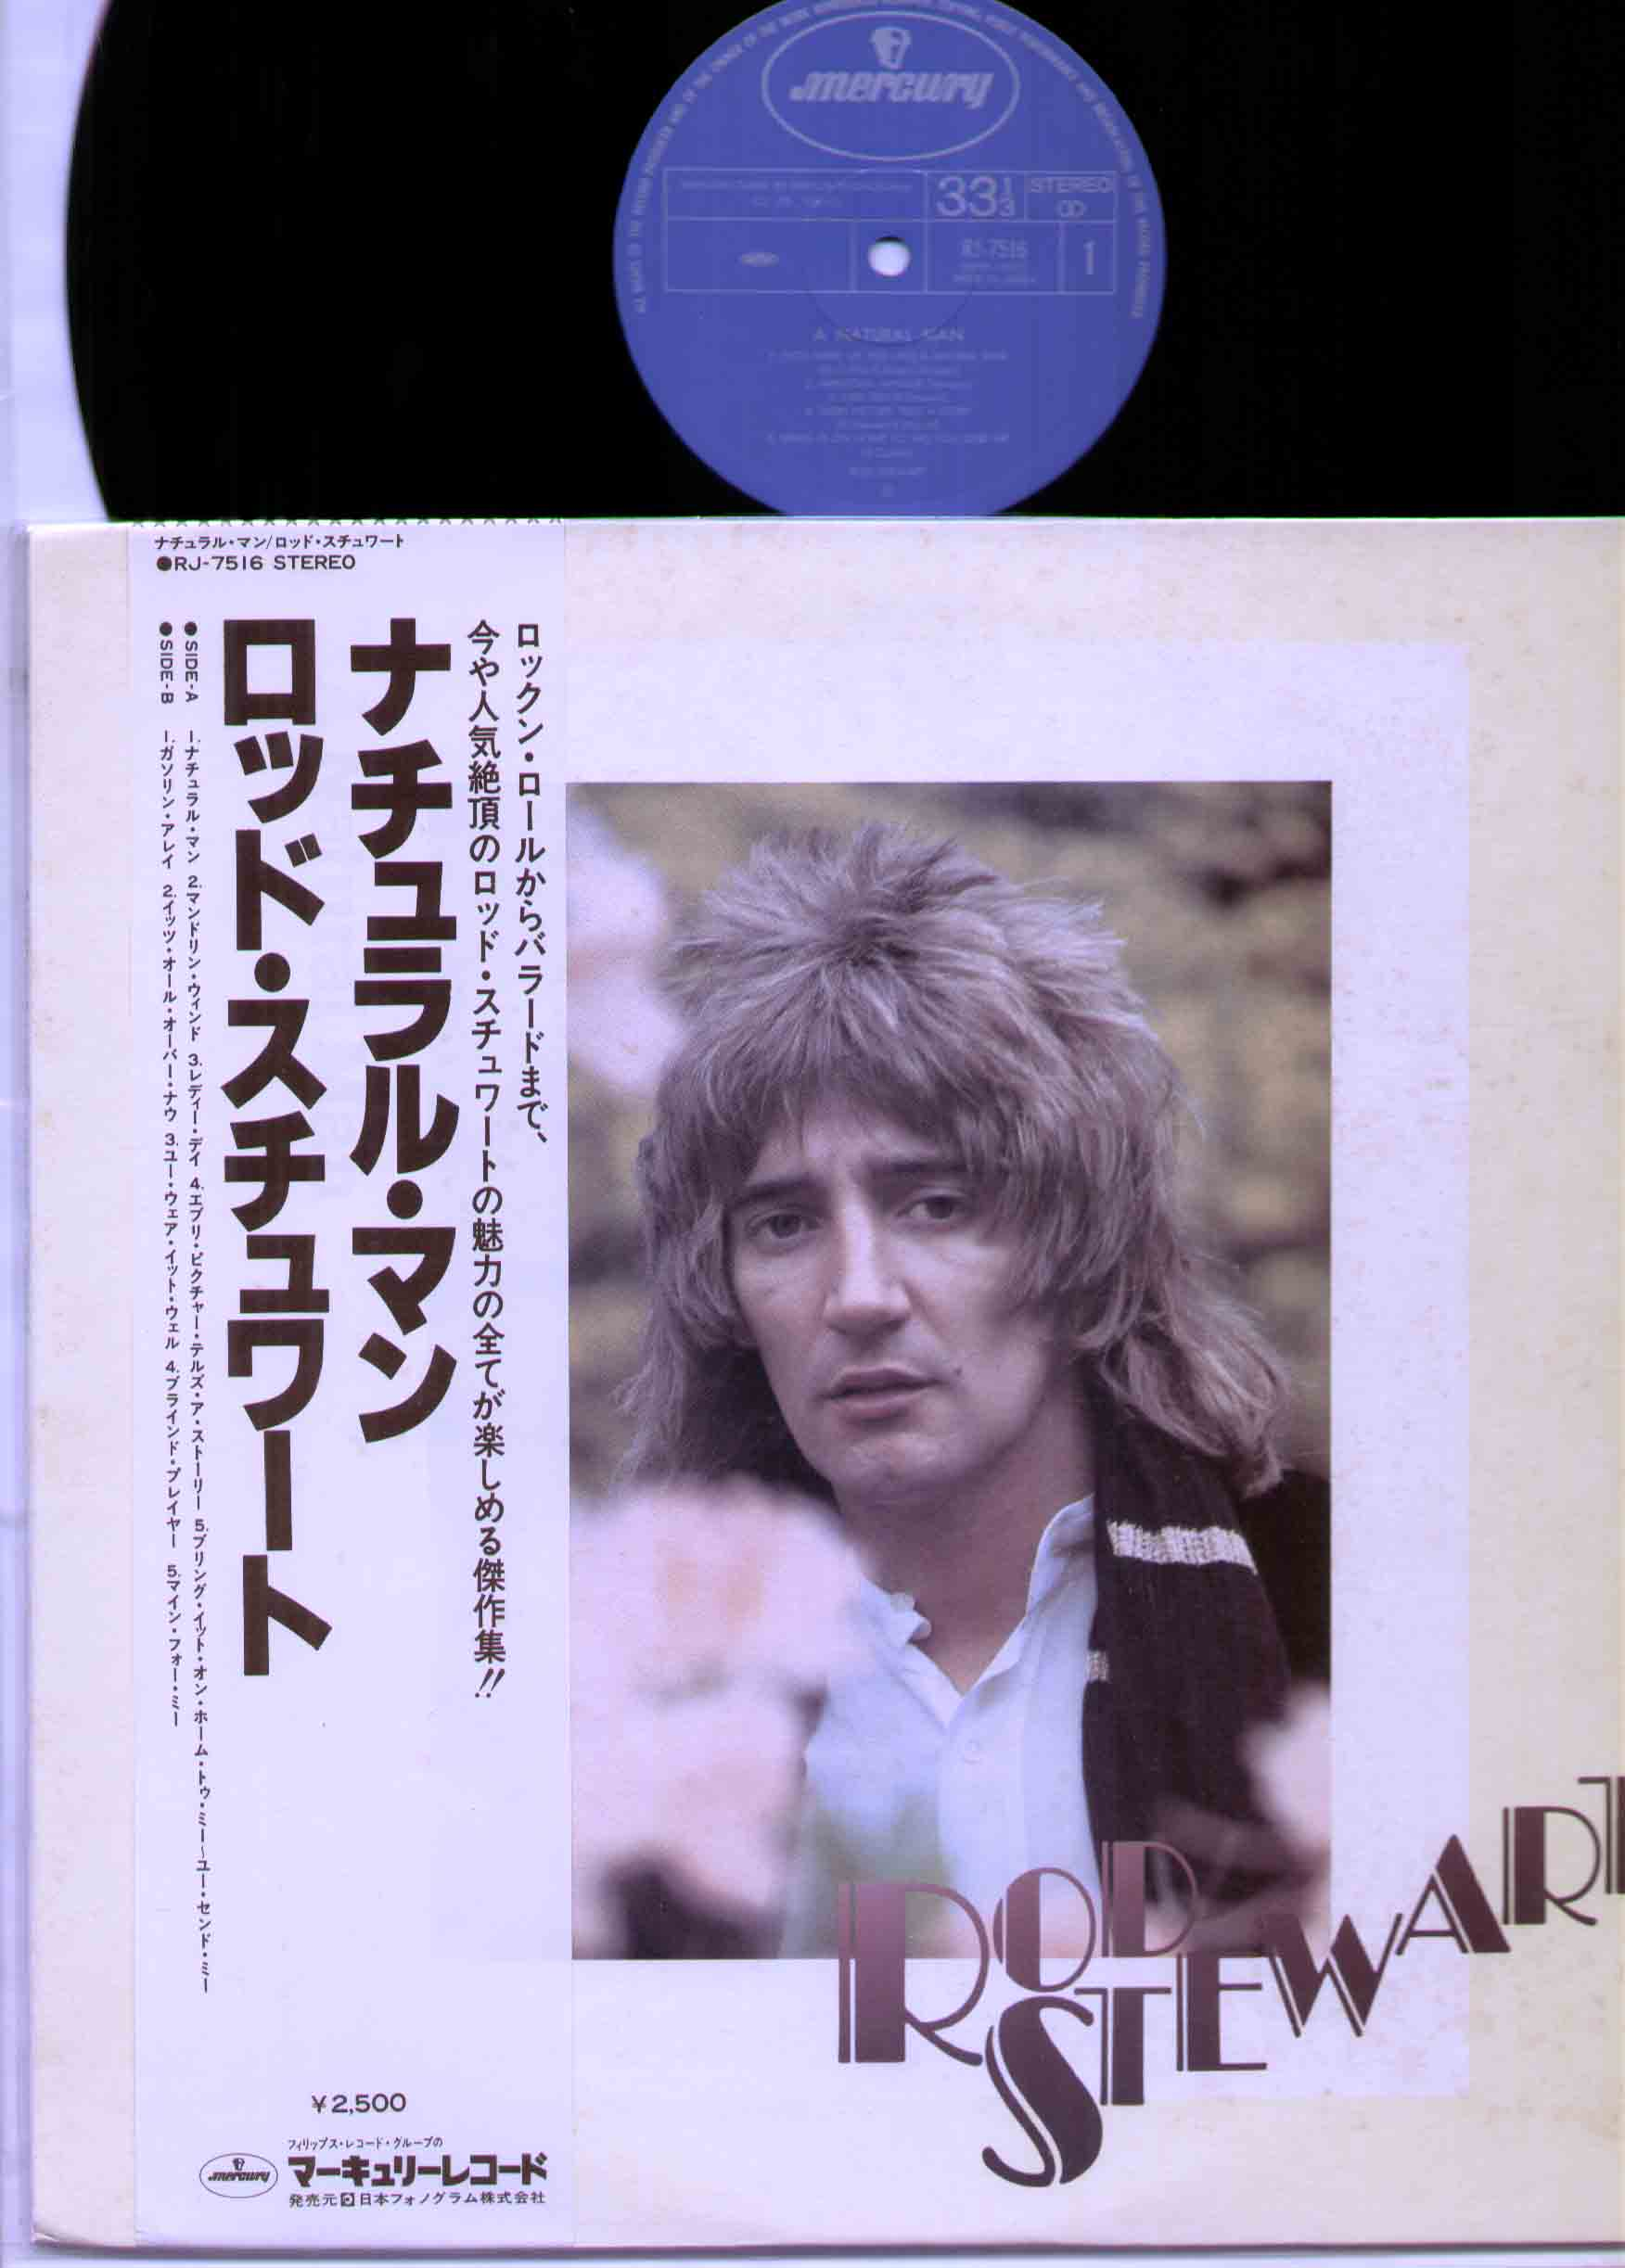 ROD STEWART - A Natural Man - 33T